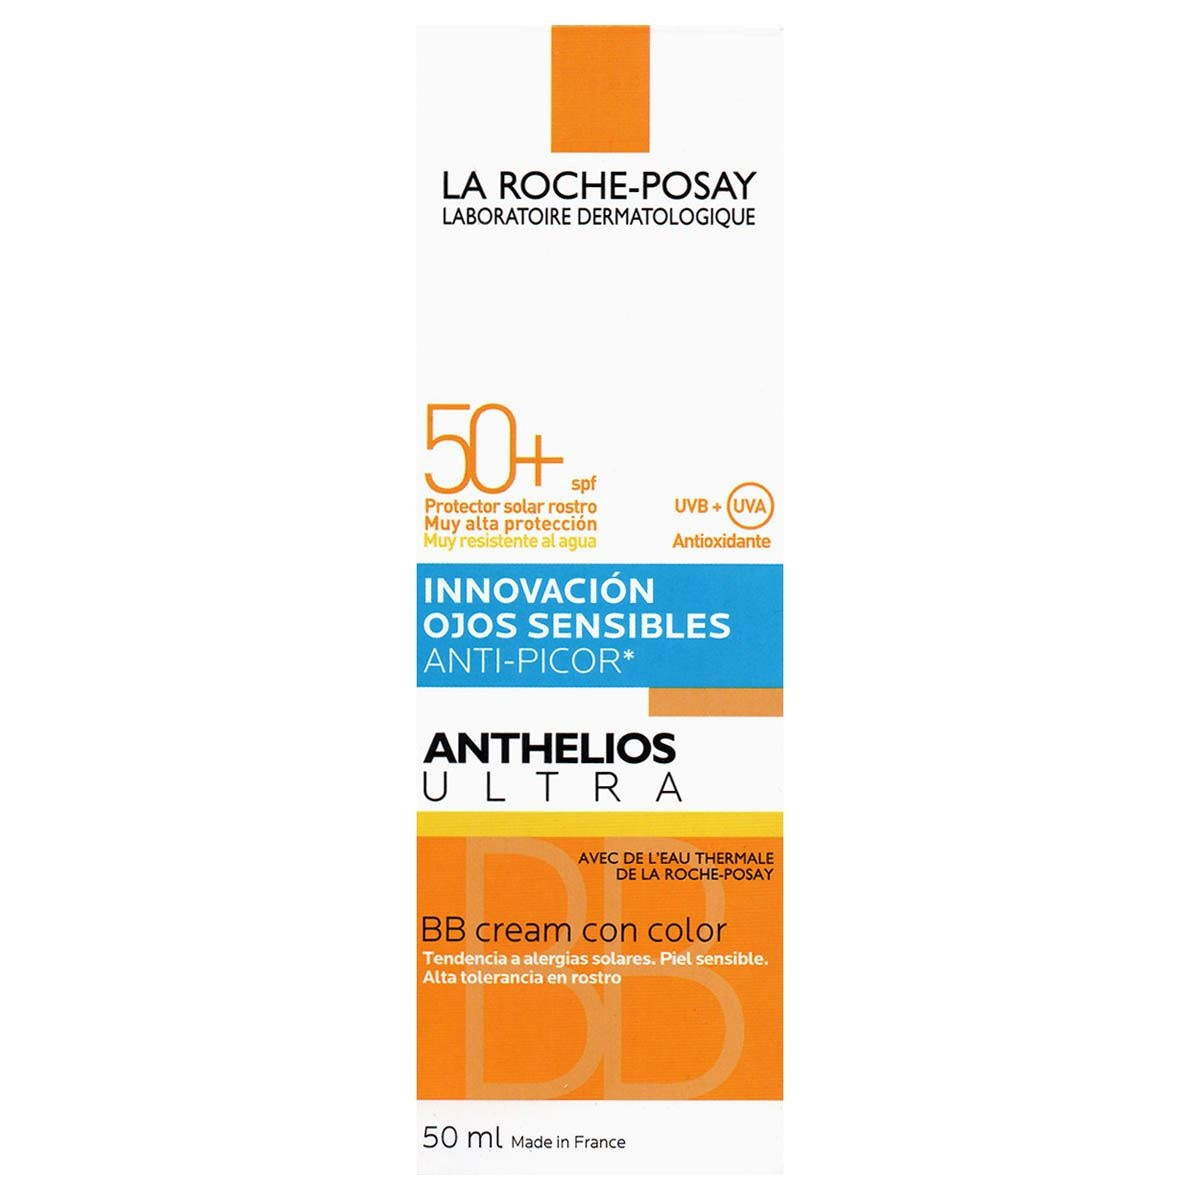 Anthelios ultra con fps 50+ de 50 ml con color  - Sanborns